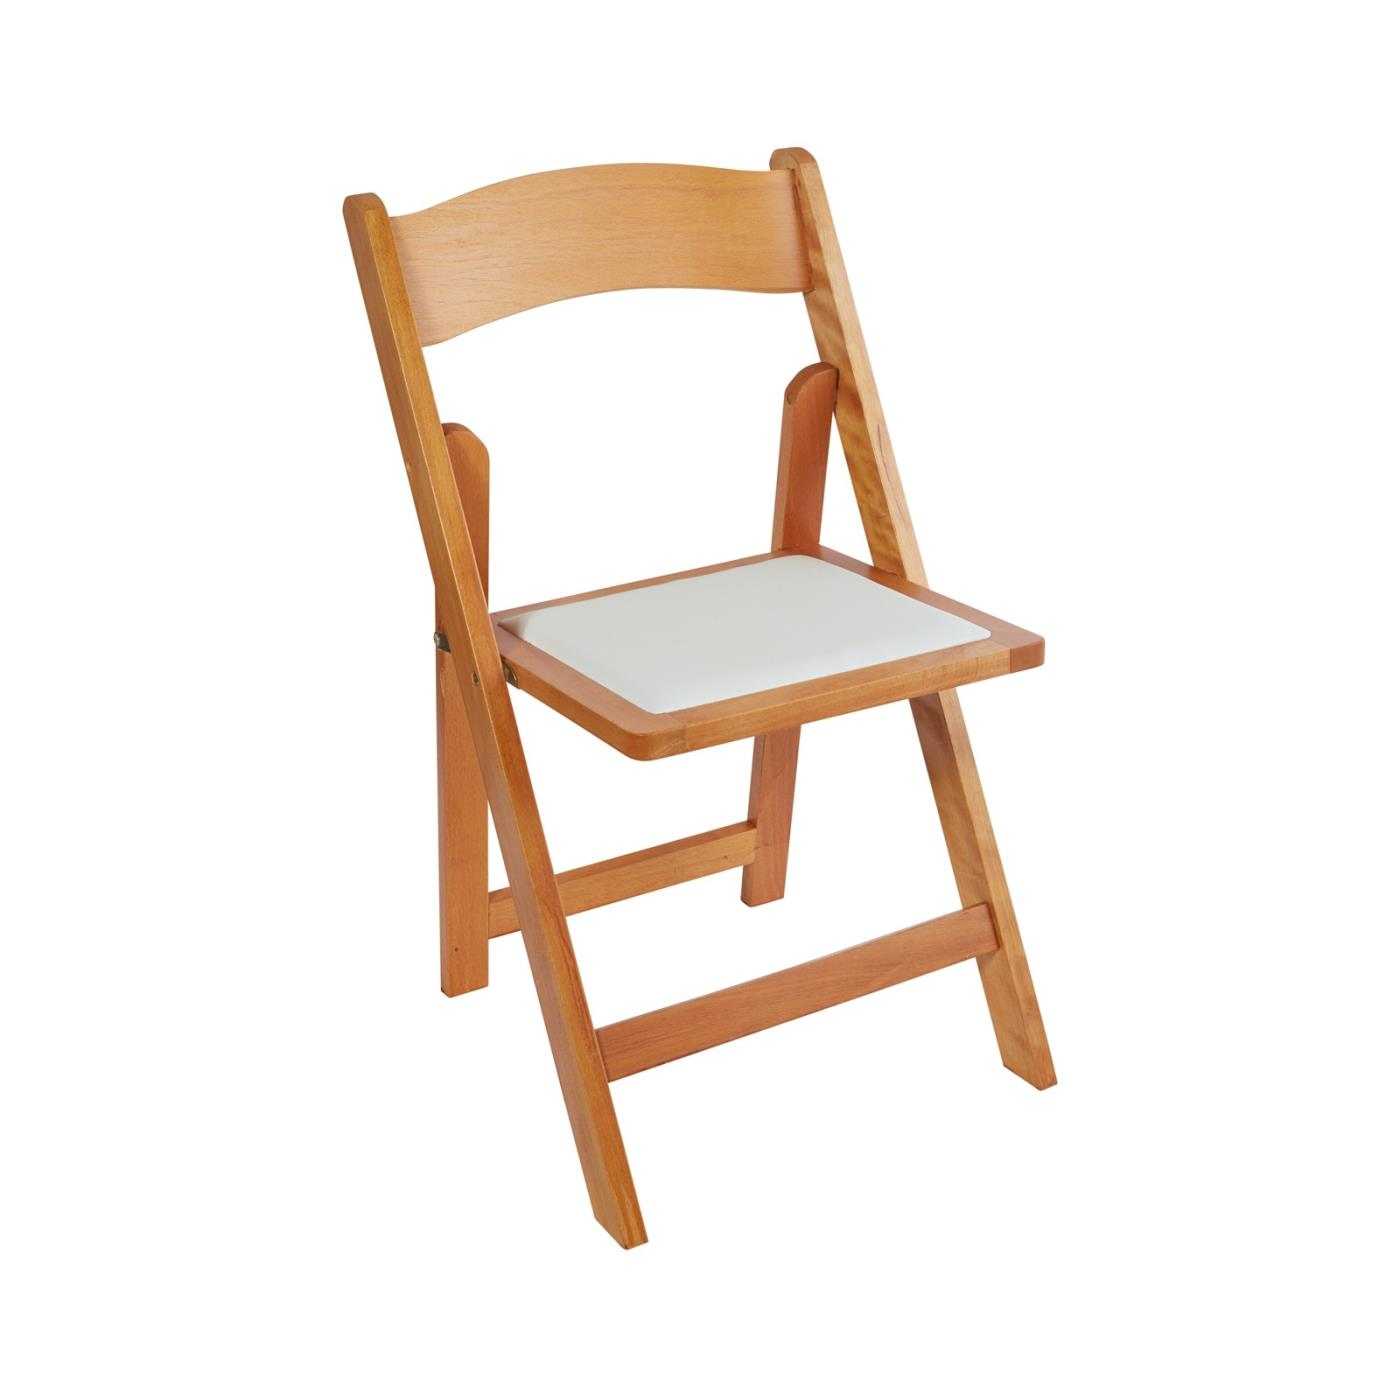 Wood Folding Chair - Natural